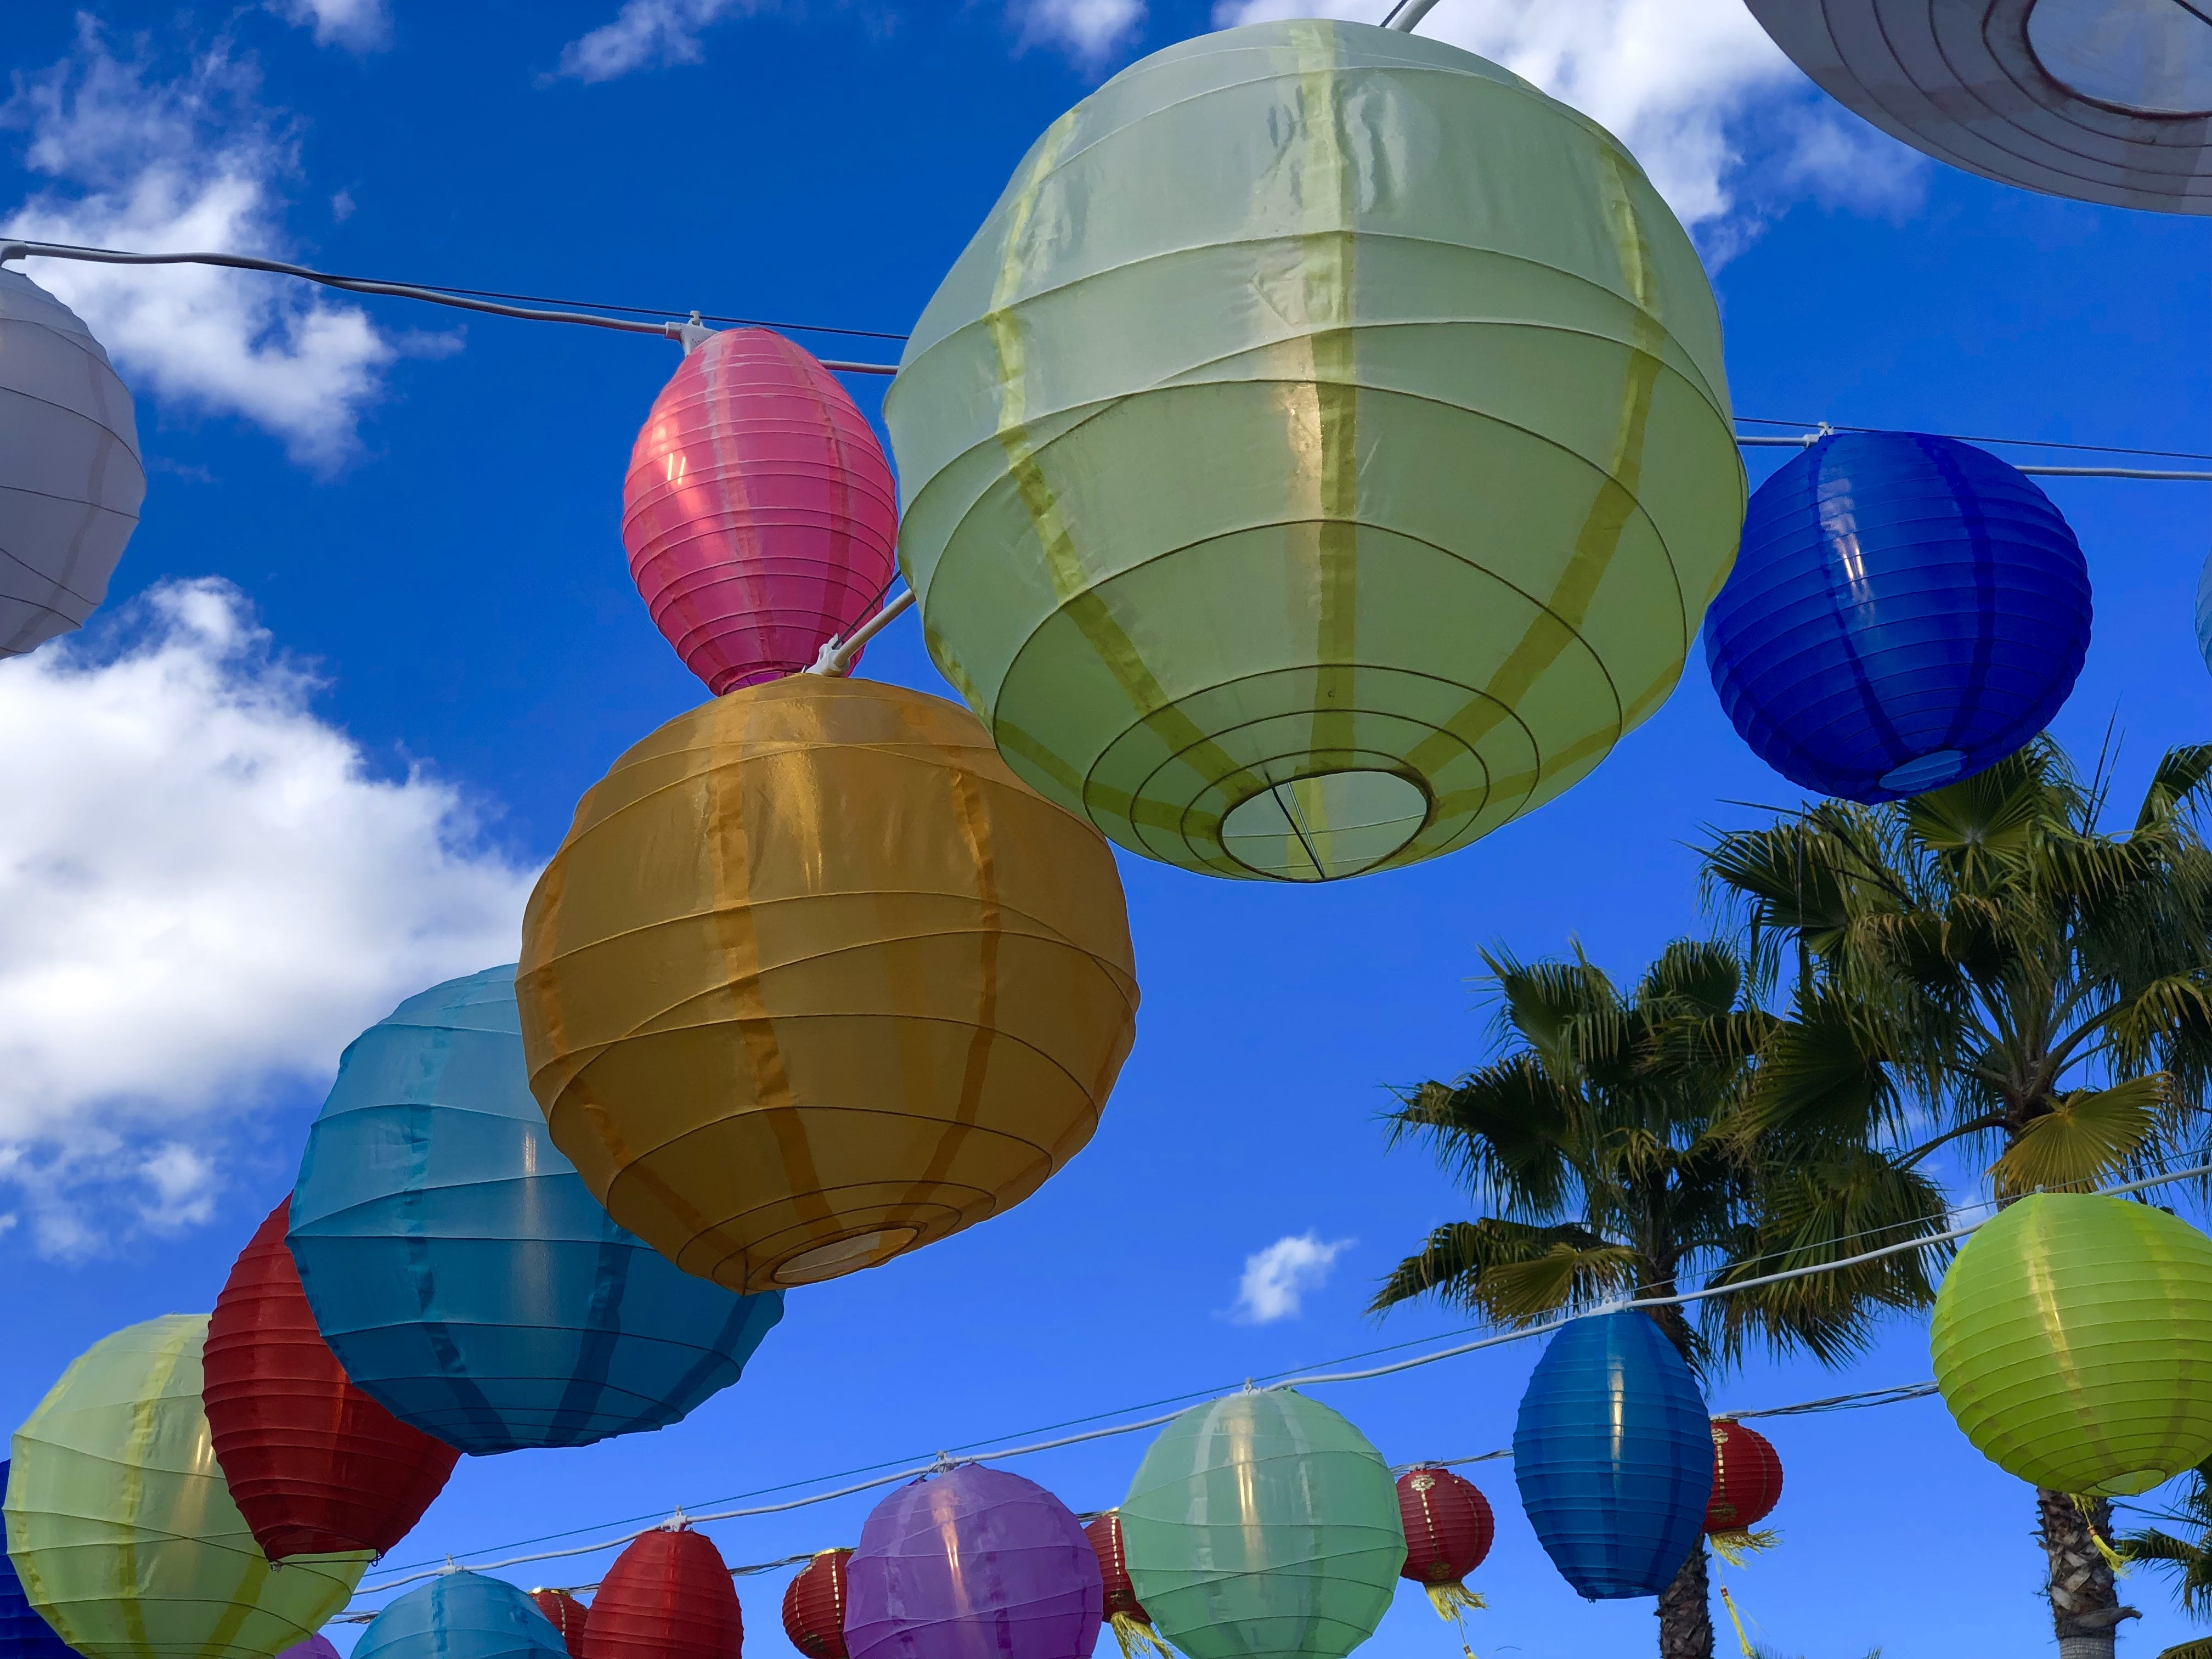 Free stock photo of blue sky, chinese lanterns, clouds, colorful